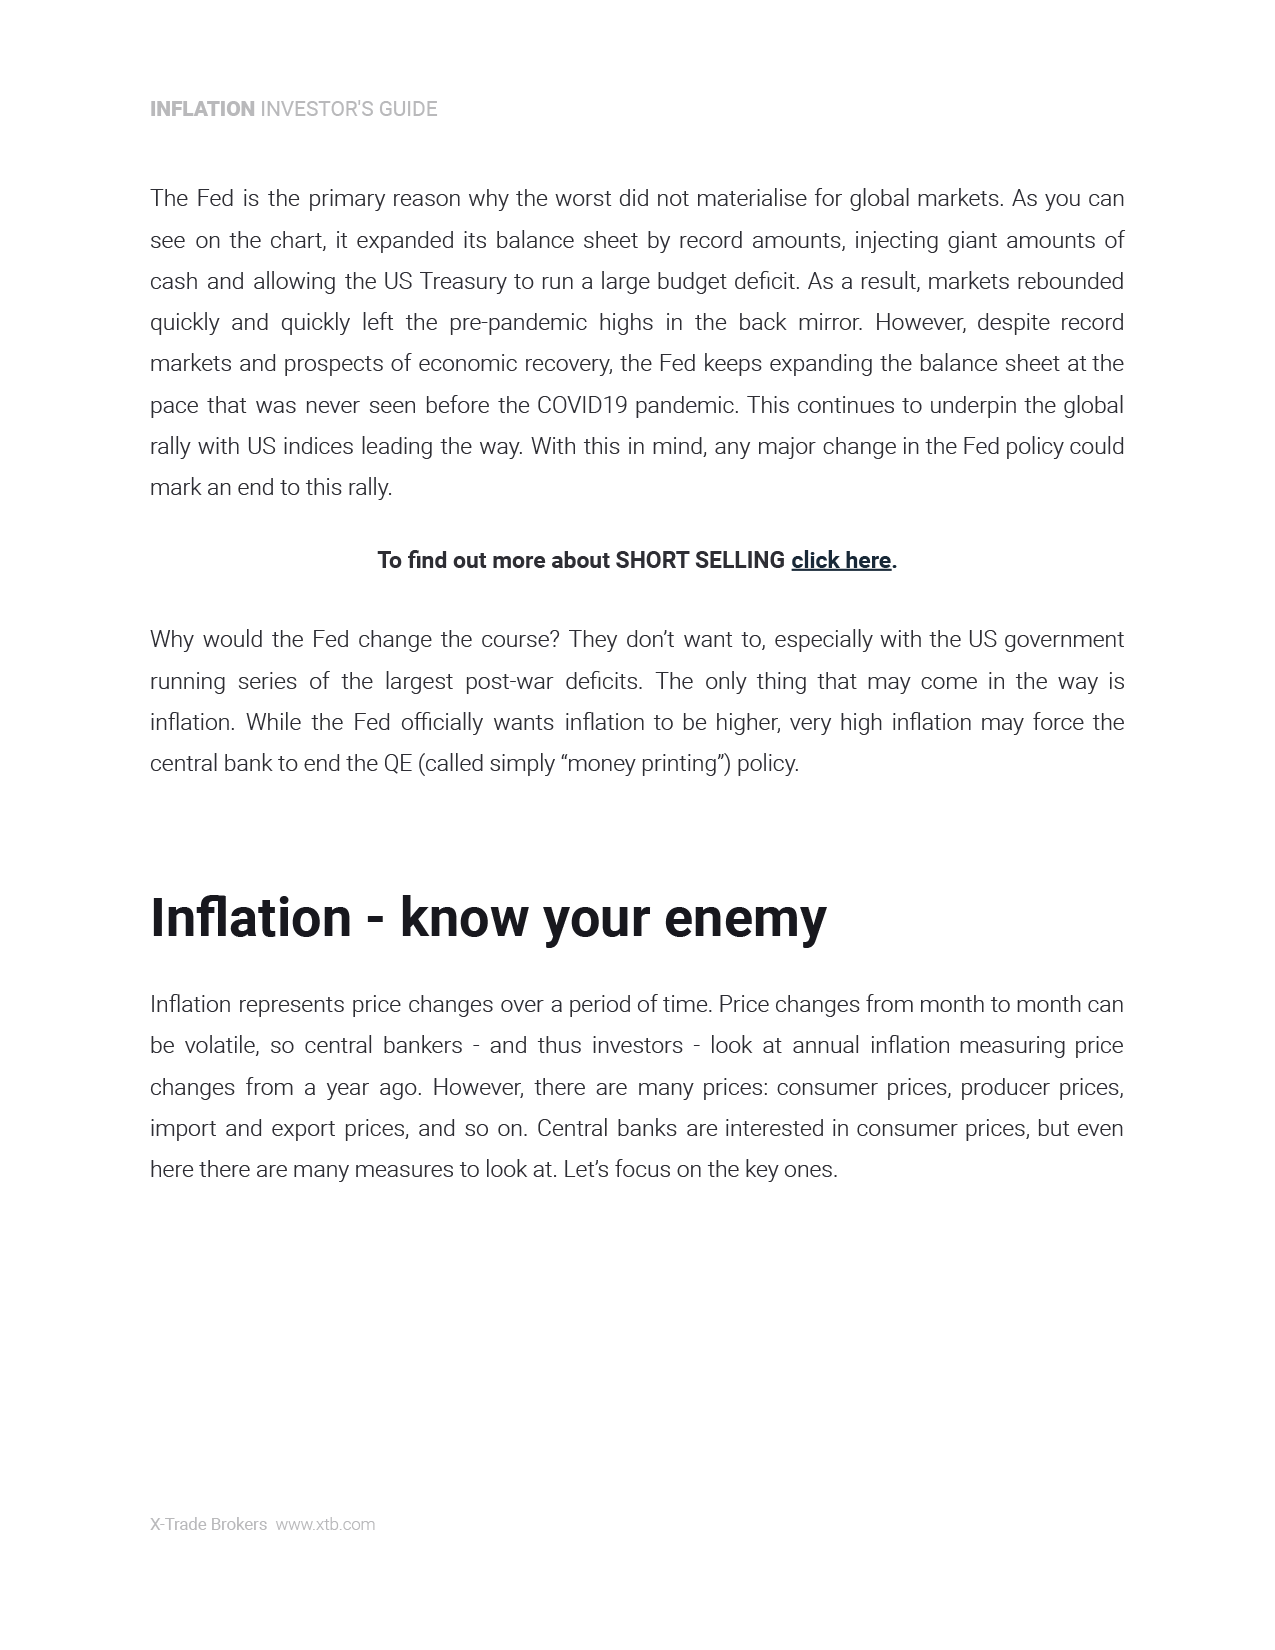 Inflation - Report UK-5